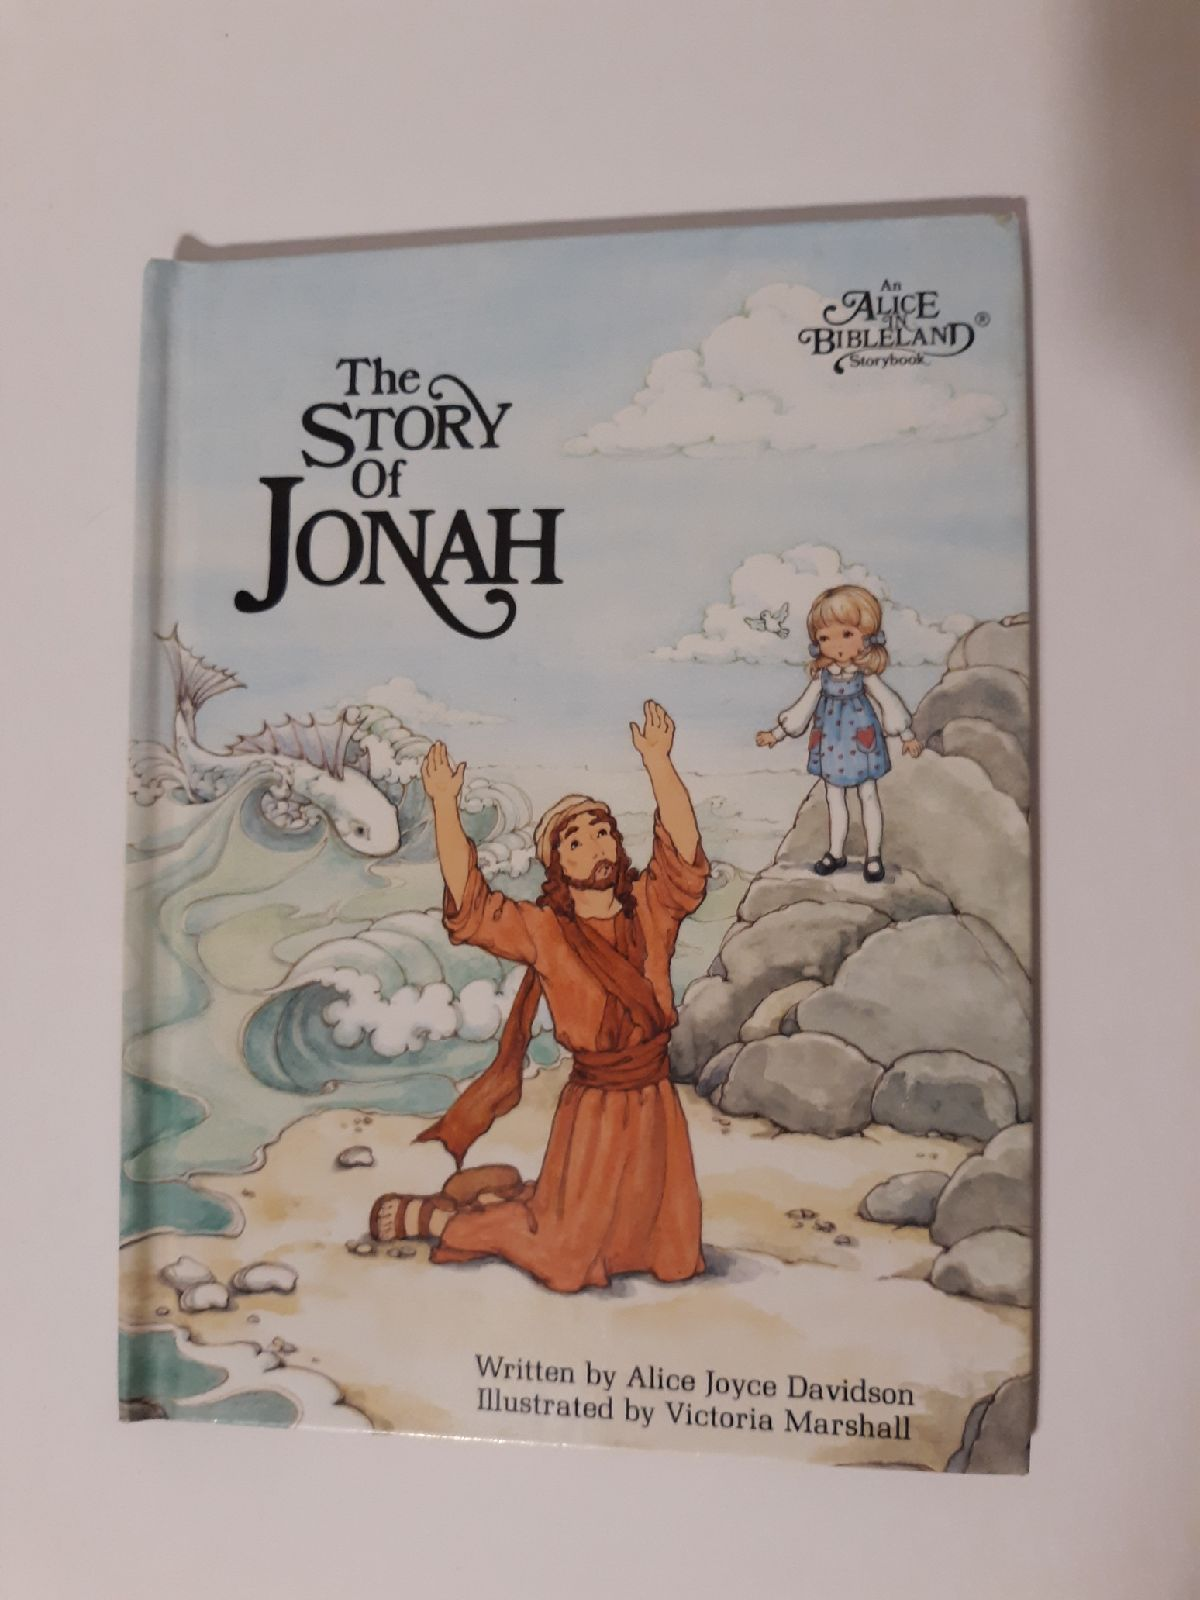 The Story of Jonah, 1984